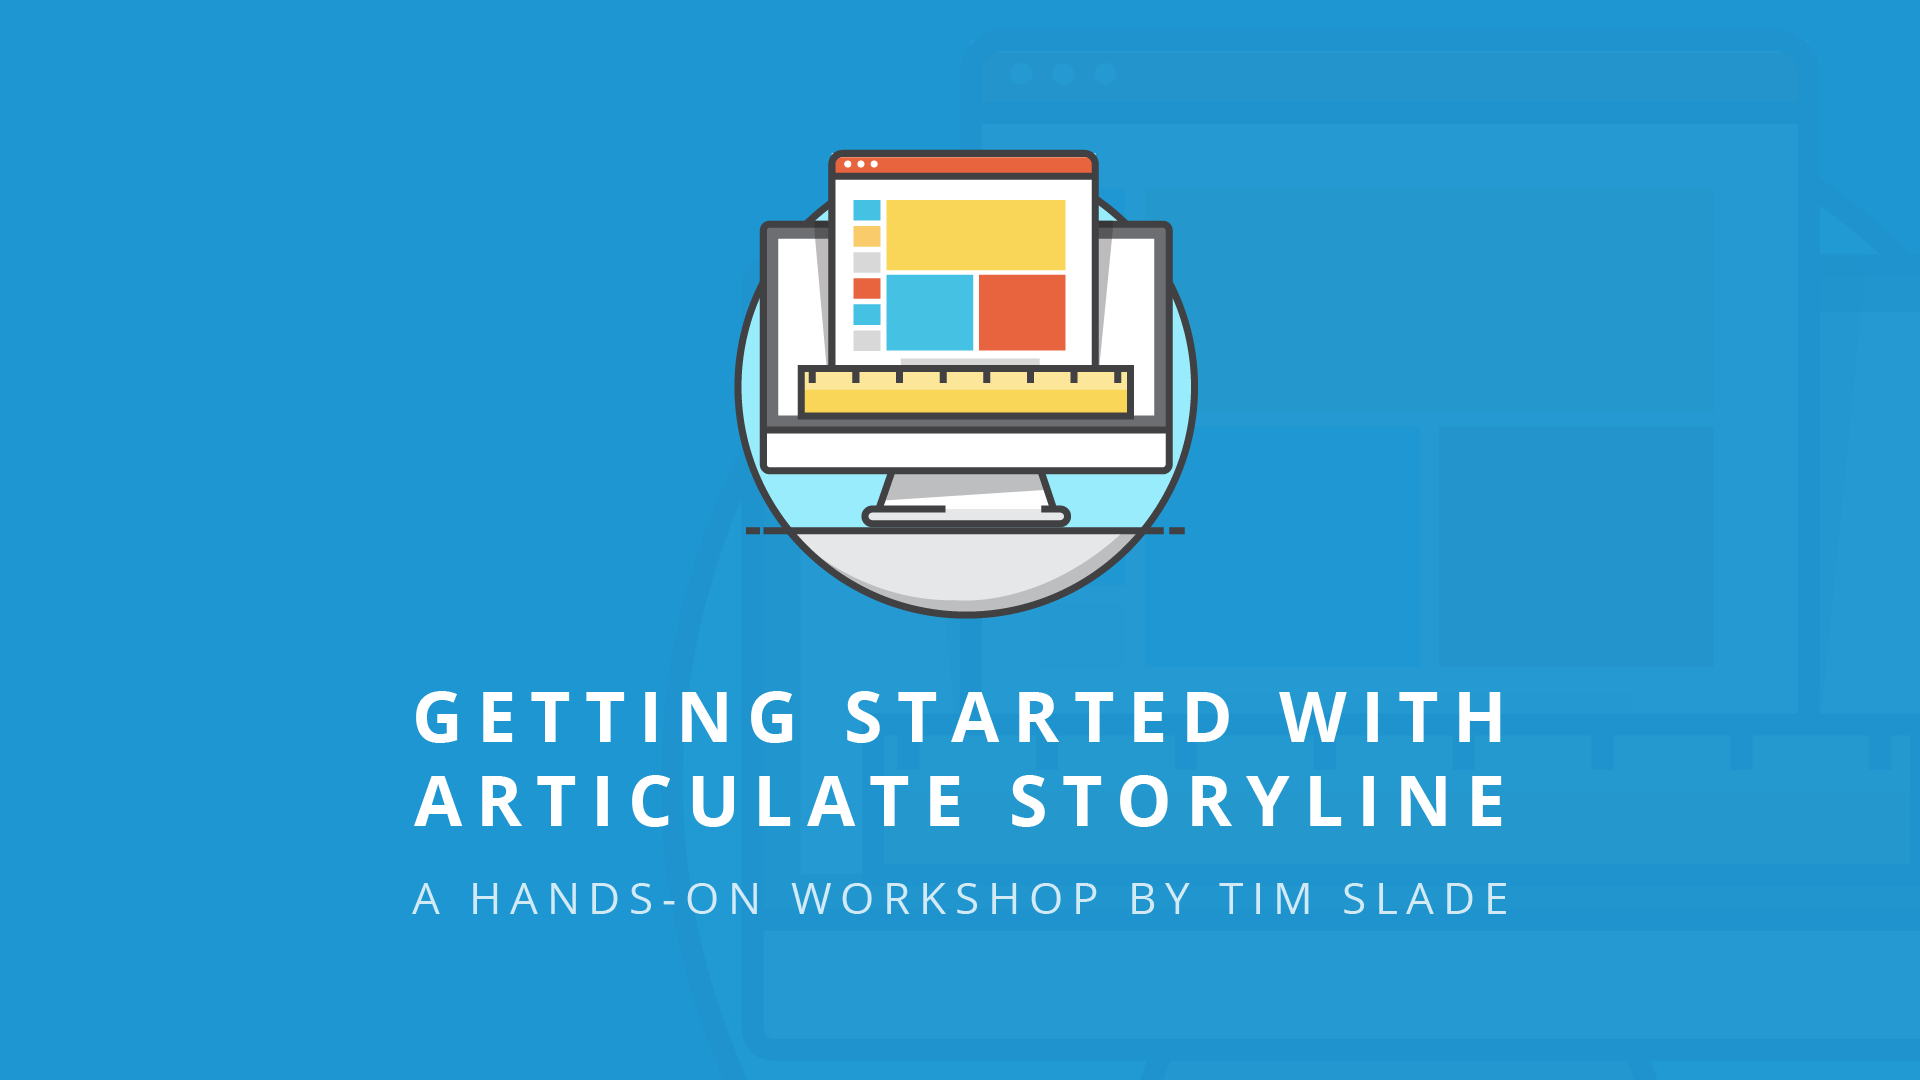 getting started with articulate storyline - eLearning Workshops by Tim Slade